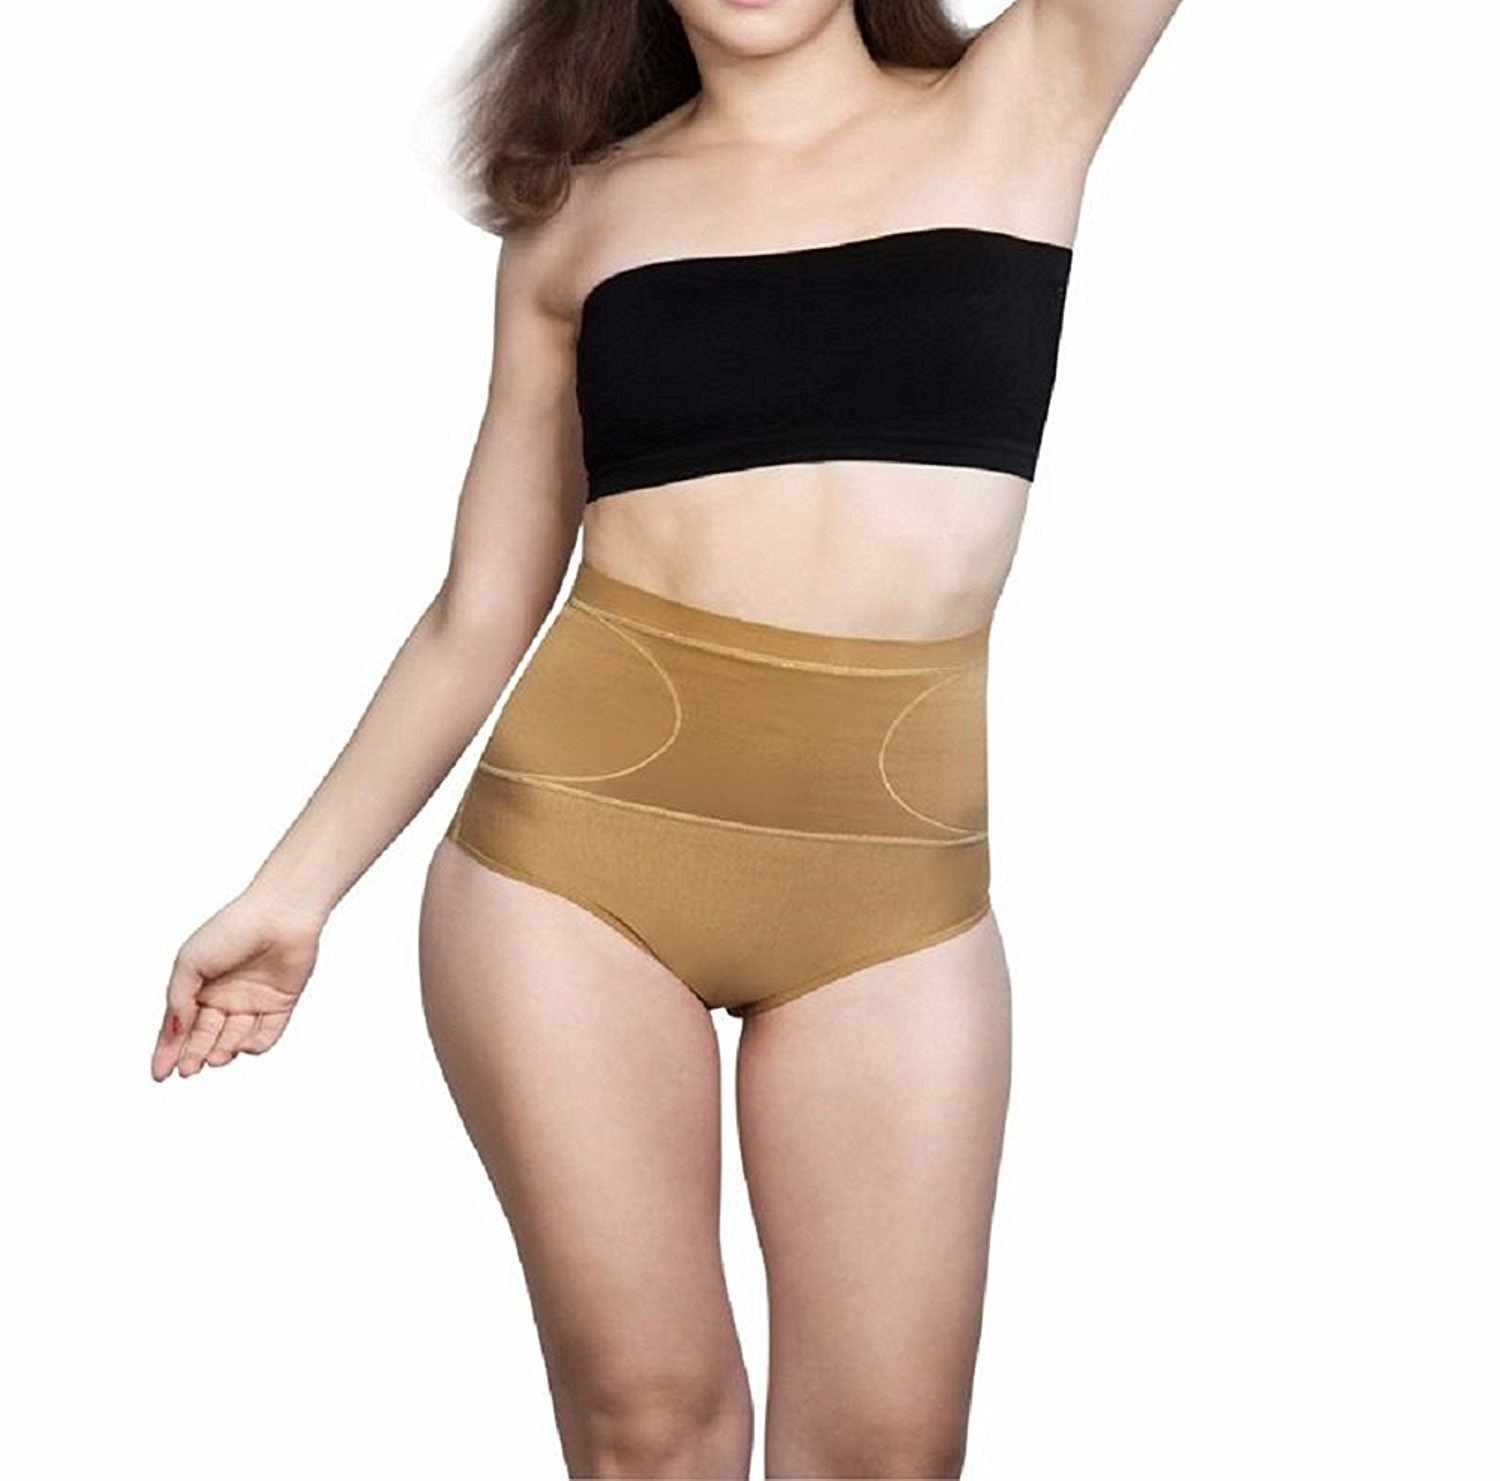 Body Brace Women's Tummy Shaper Panty